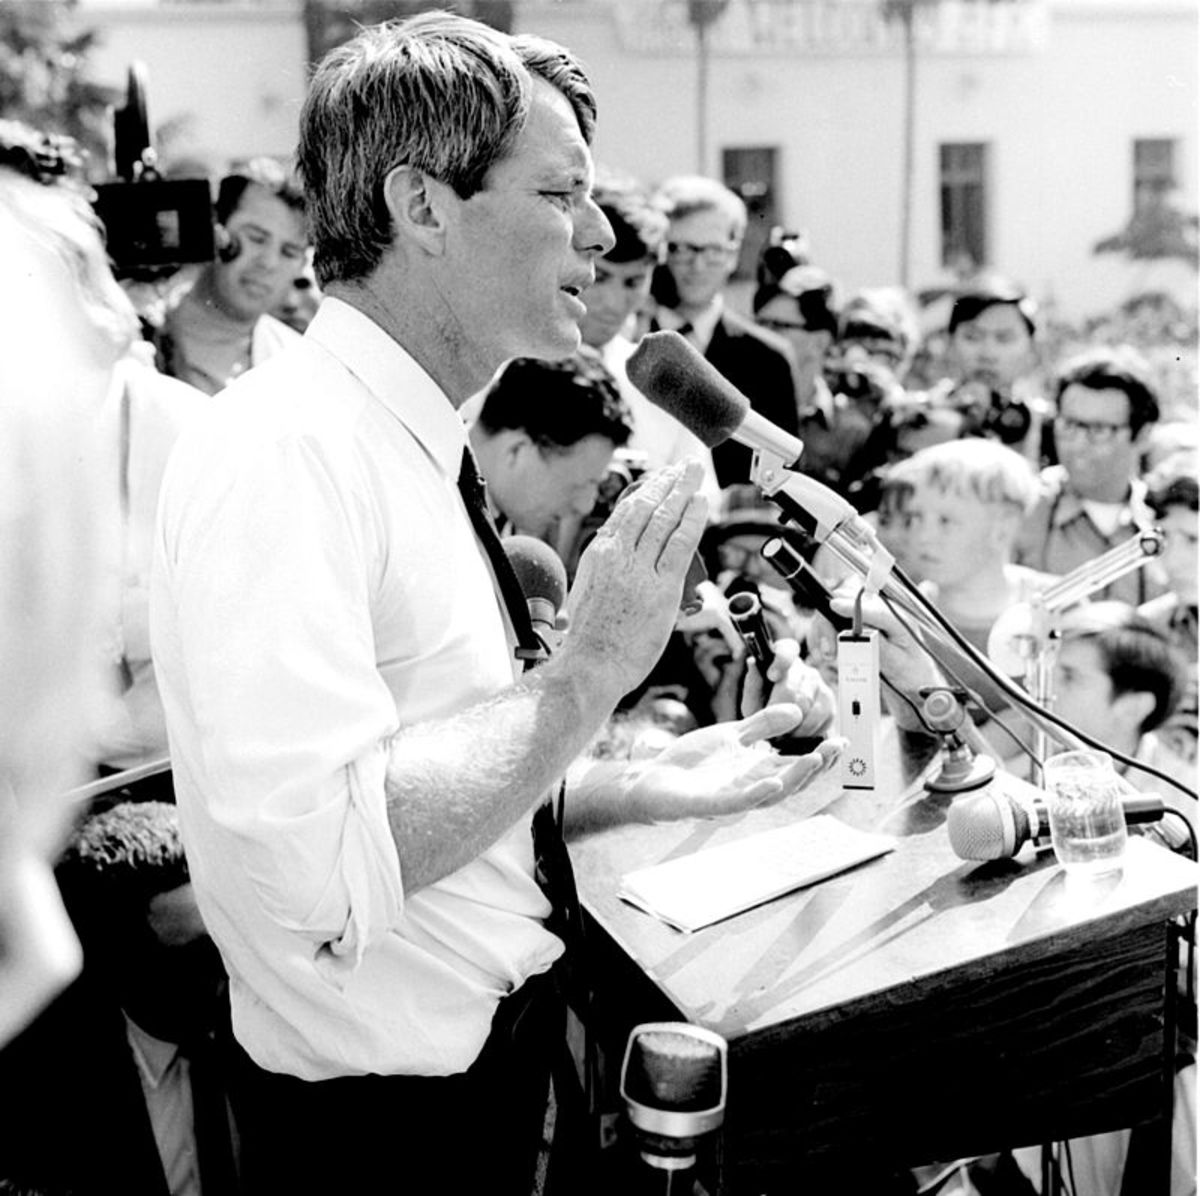 The Assassination of Robert F. Kennedy: Was There a Second Shooter?